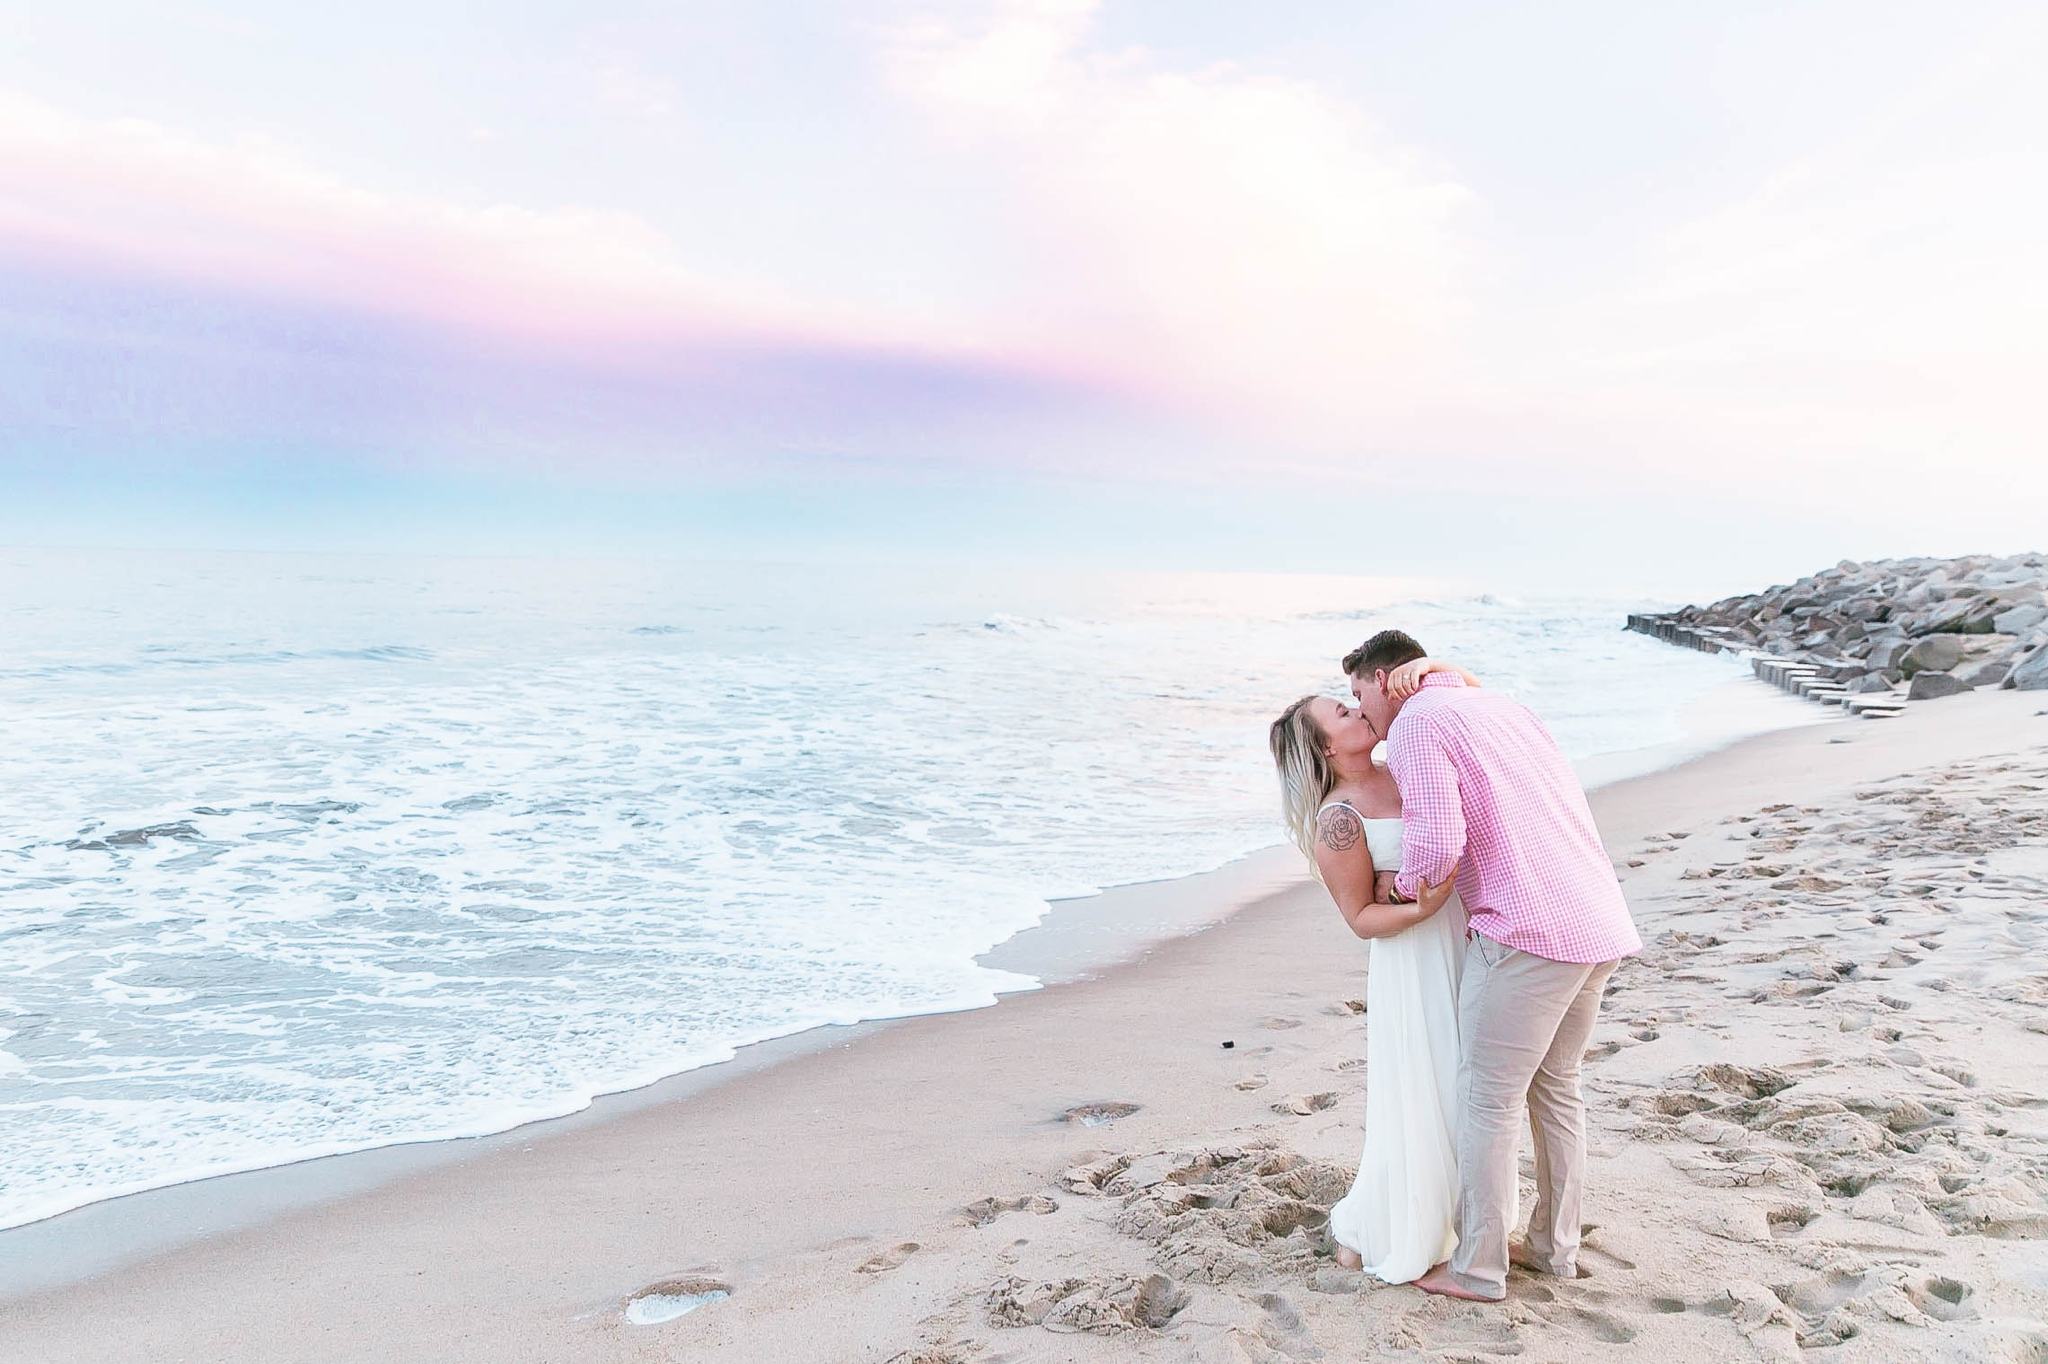 Romantic Engagement Photography Session at the beach during sunset with a cotton candy sky - guy is kissing his fiance - girl is wearing a white flowy maxi dress from lulus - Honolulu Oahu Hawaii Wedding Photographer - Johanna Dye